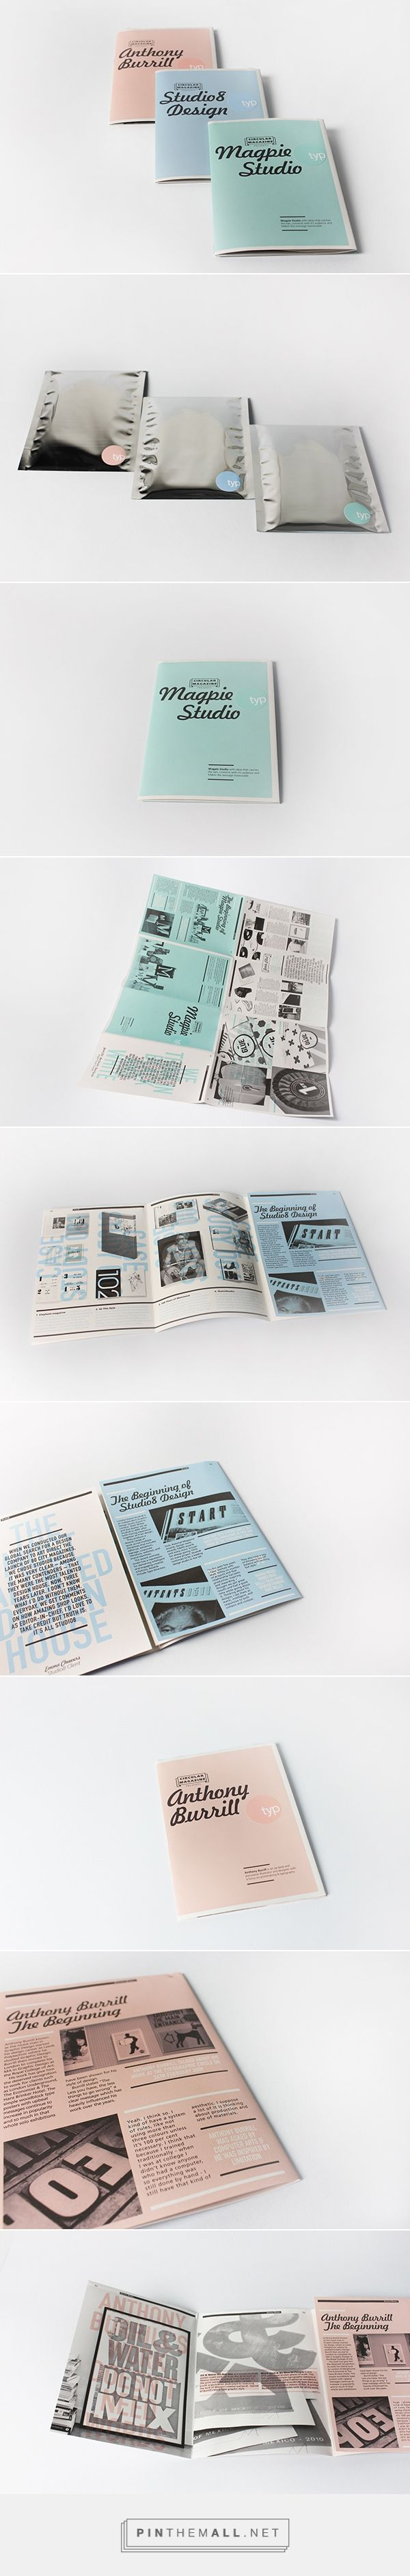 Circular Magazine Supplement by James Alexander